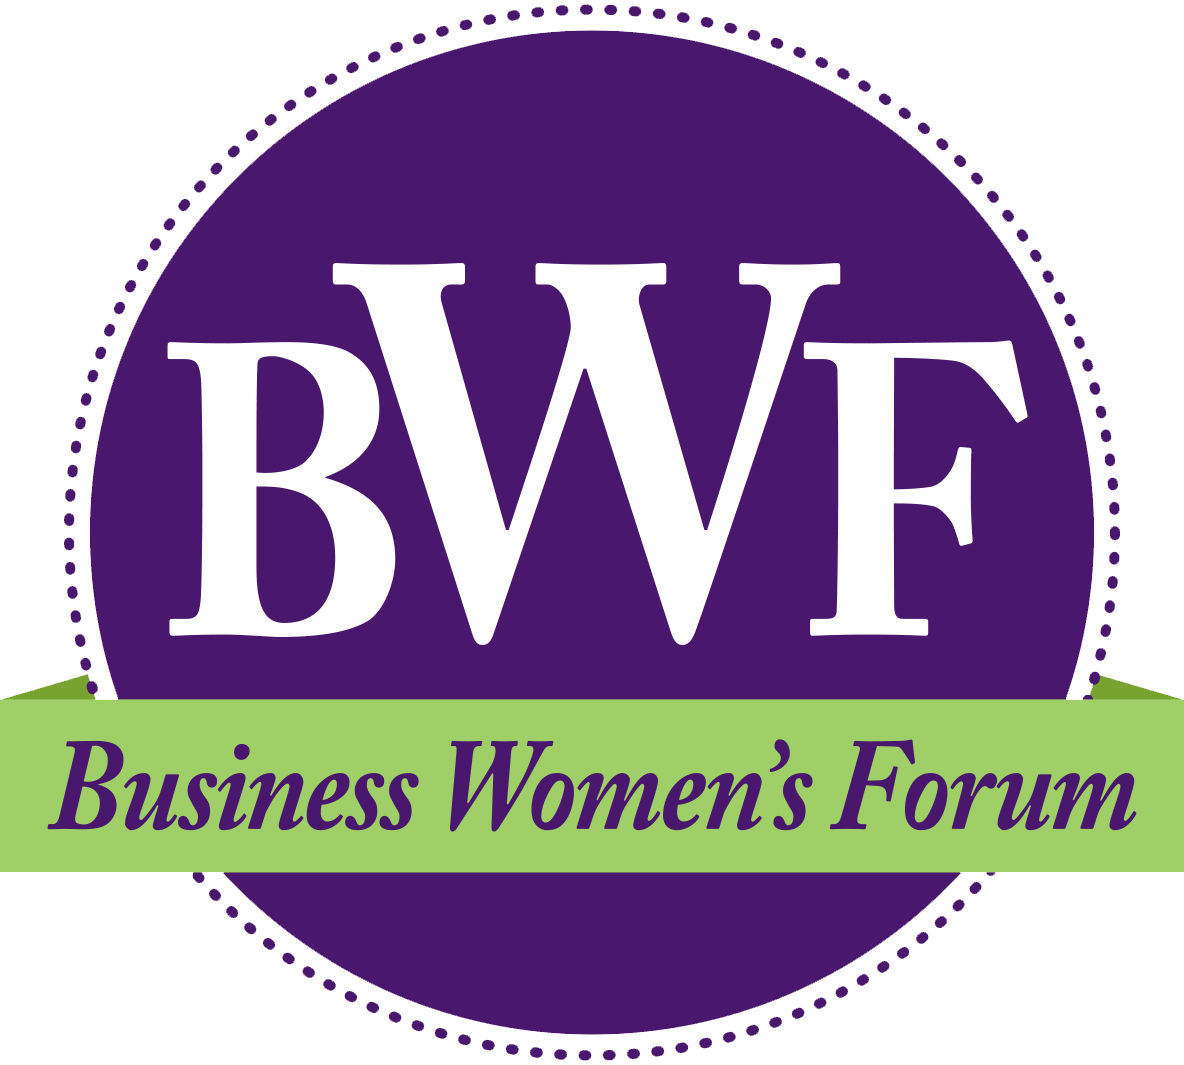 Image for Business Women's Forum is Looking for Fantastic Speakers